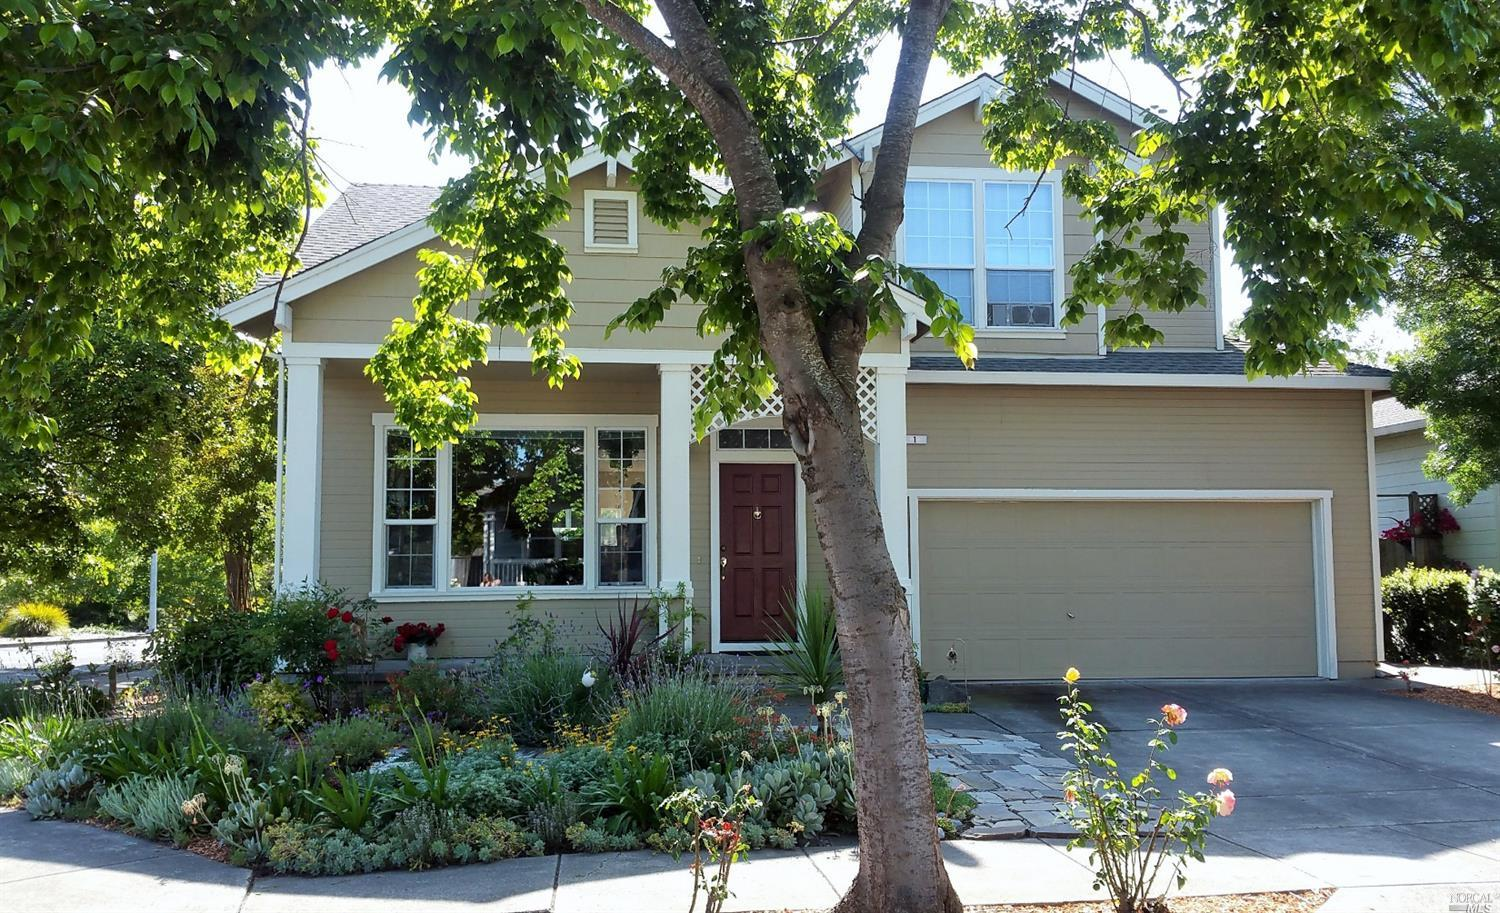 1 Twin Creeks Circle, Petaluma, CA